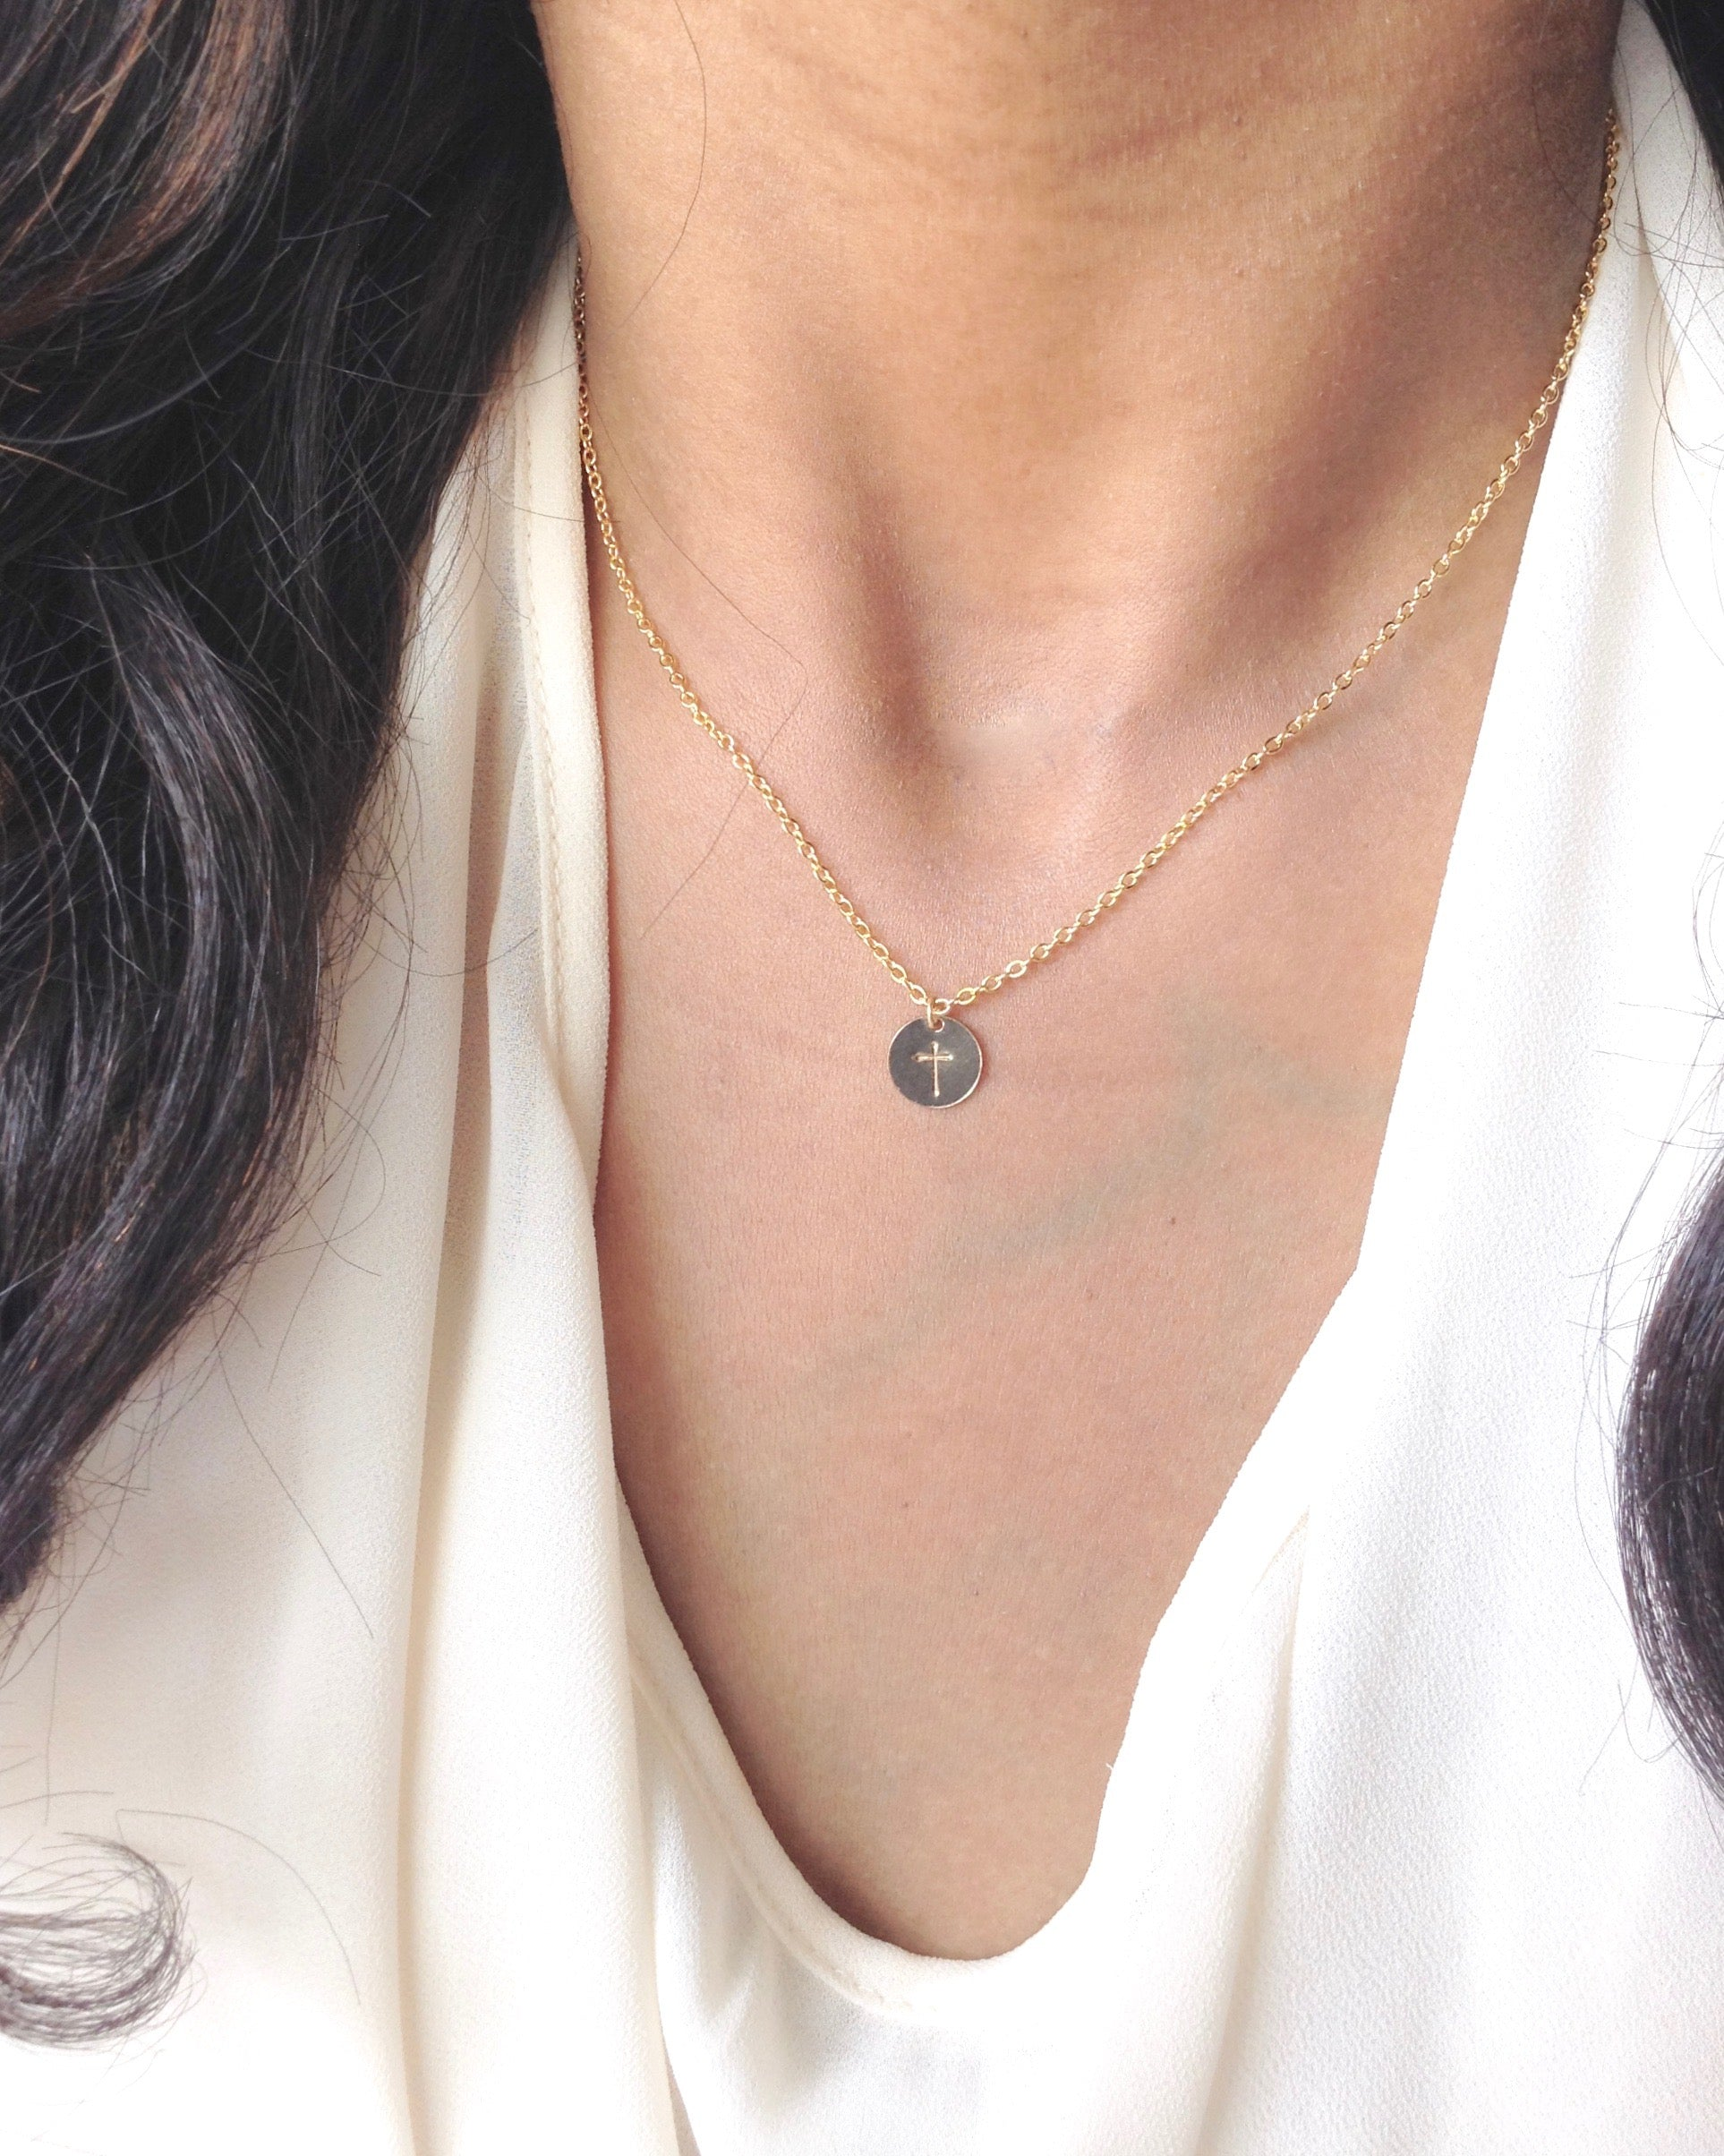 Tiny Simple Cross Necklace in Gold Filled or Sterling Silver | IB Jewelry